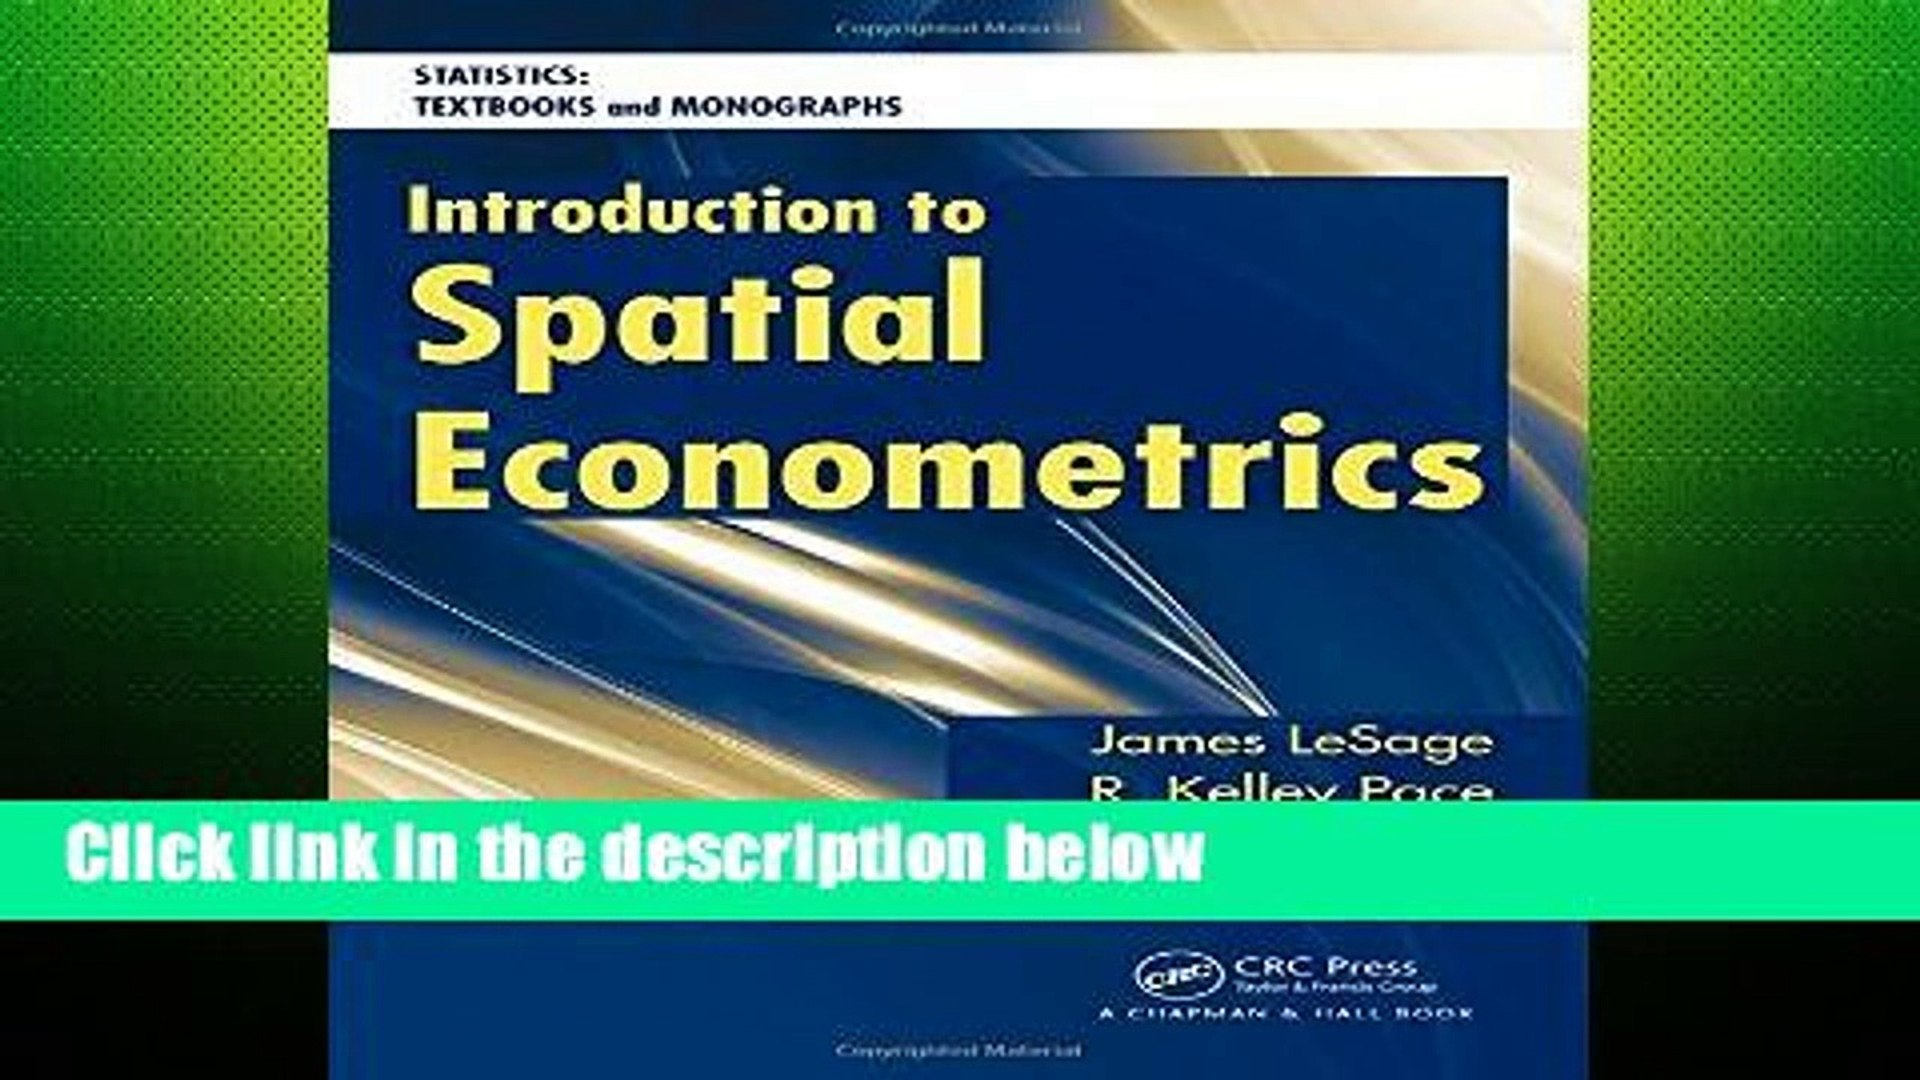 [P D F] Introduction to Spatial Econometrics (Statistics: A Series of  Textbooks and Monographs)